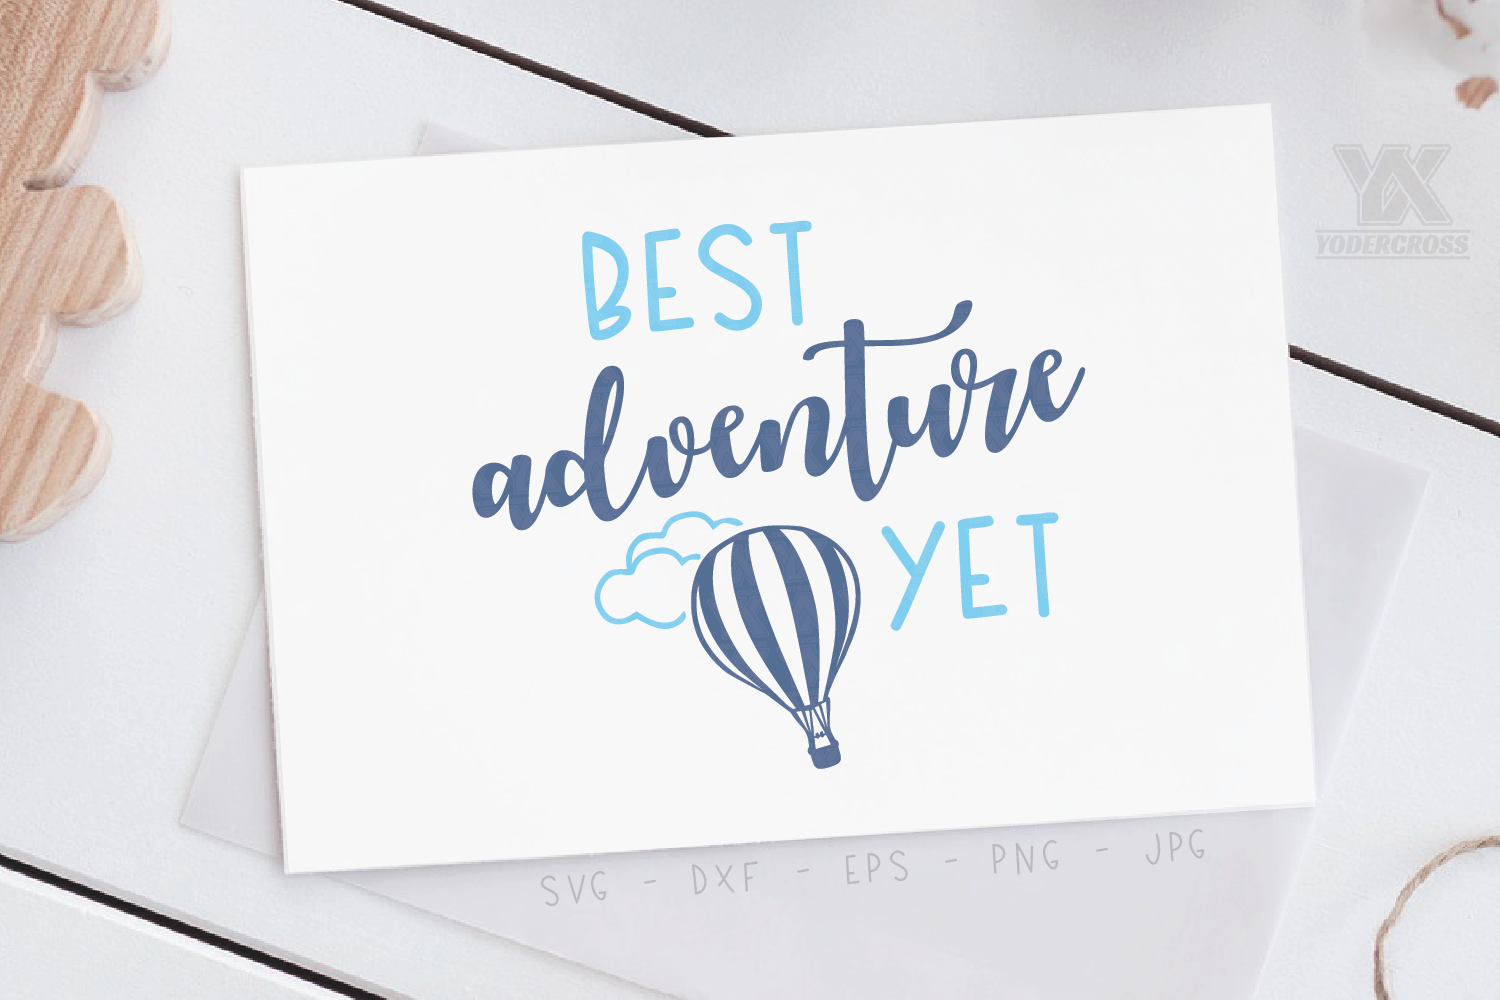 Adenture SVG, Best Adventure Yet example image 2